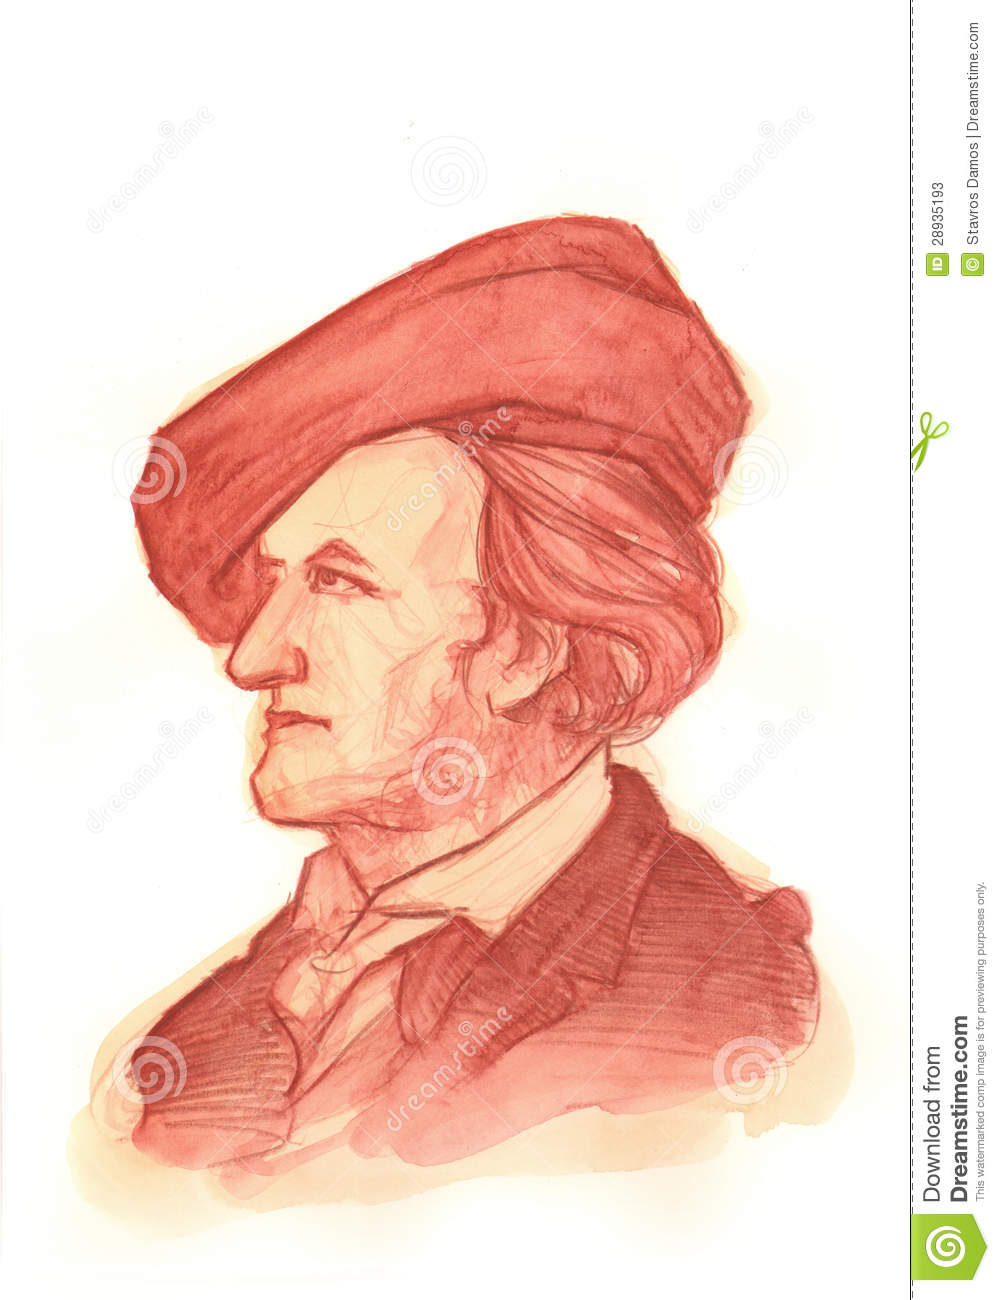 Retrato del Watercolour de Richard Wagner